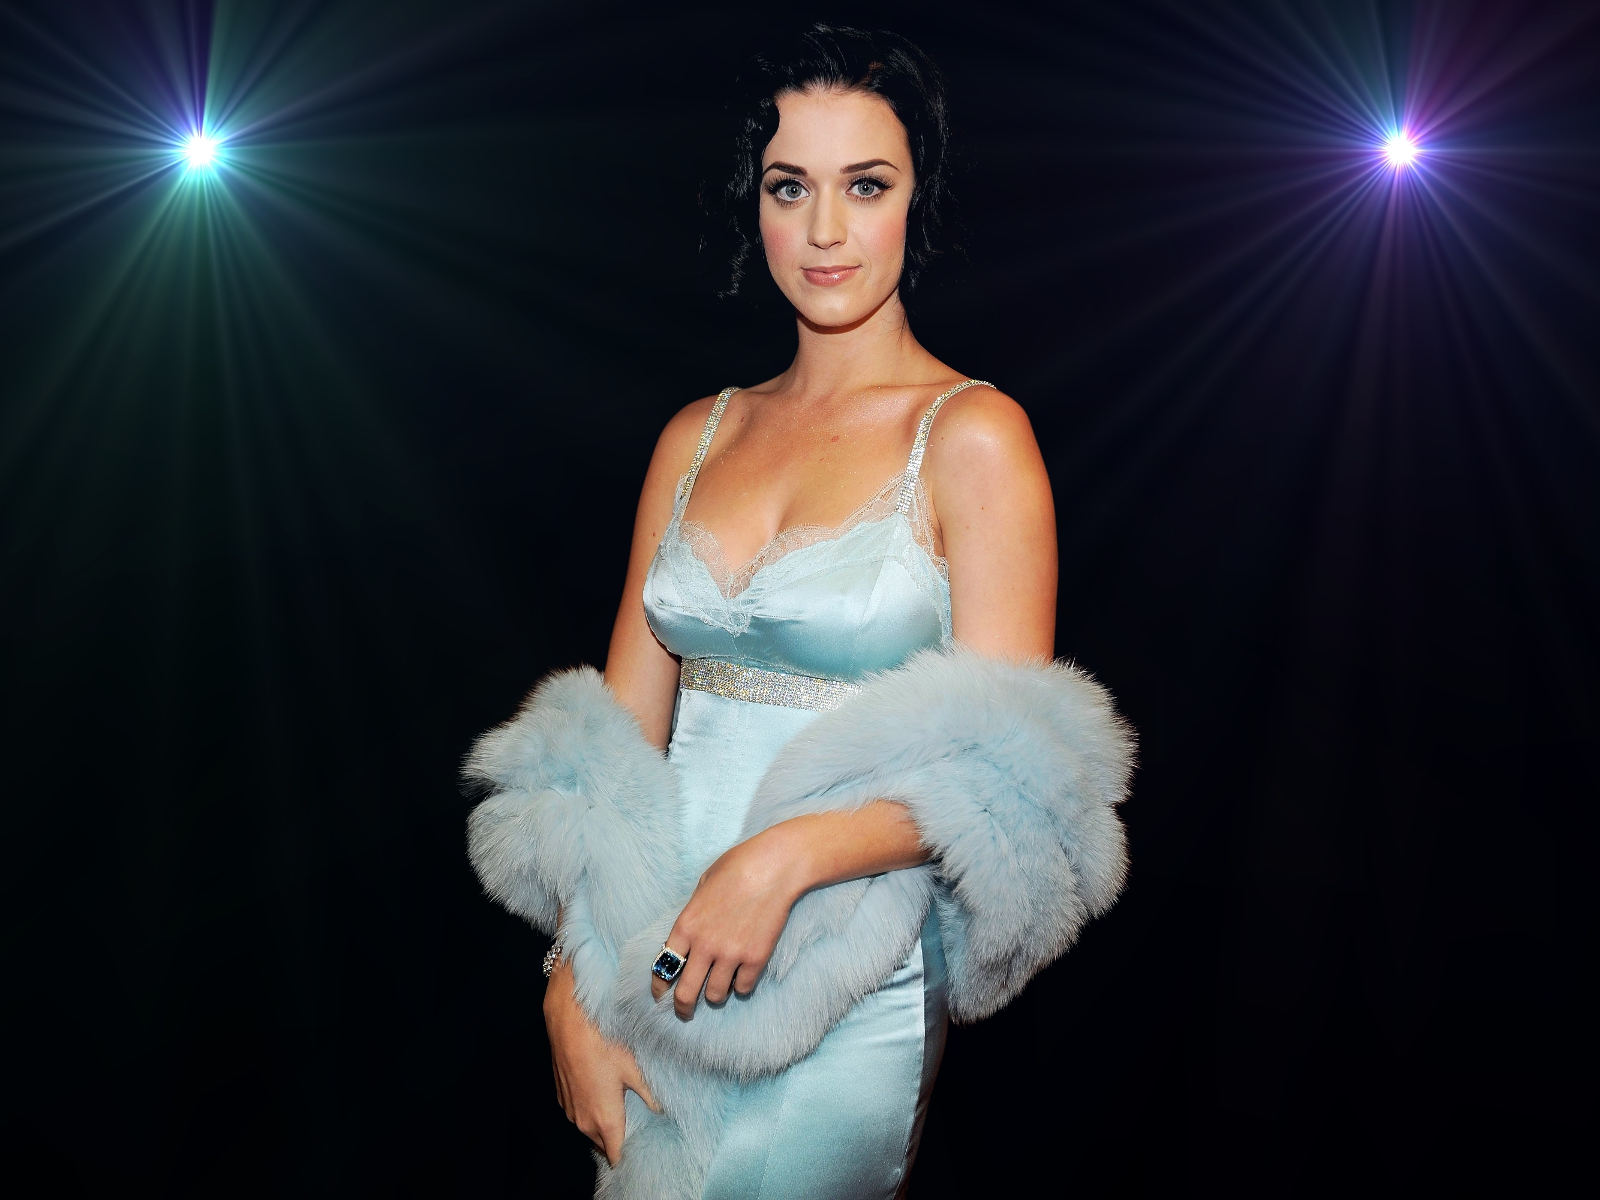 My Sexy Celebrities Wallpapers: Katy Perry Wallpapers